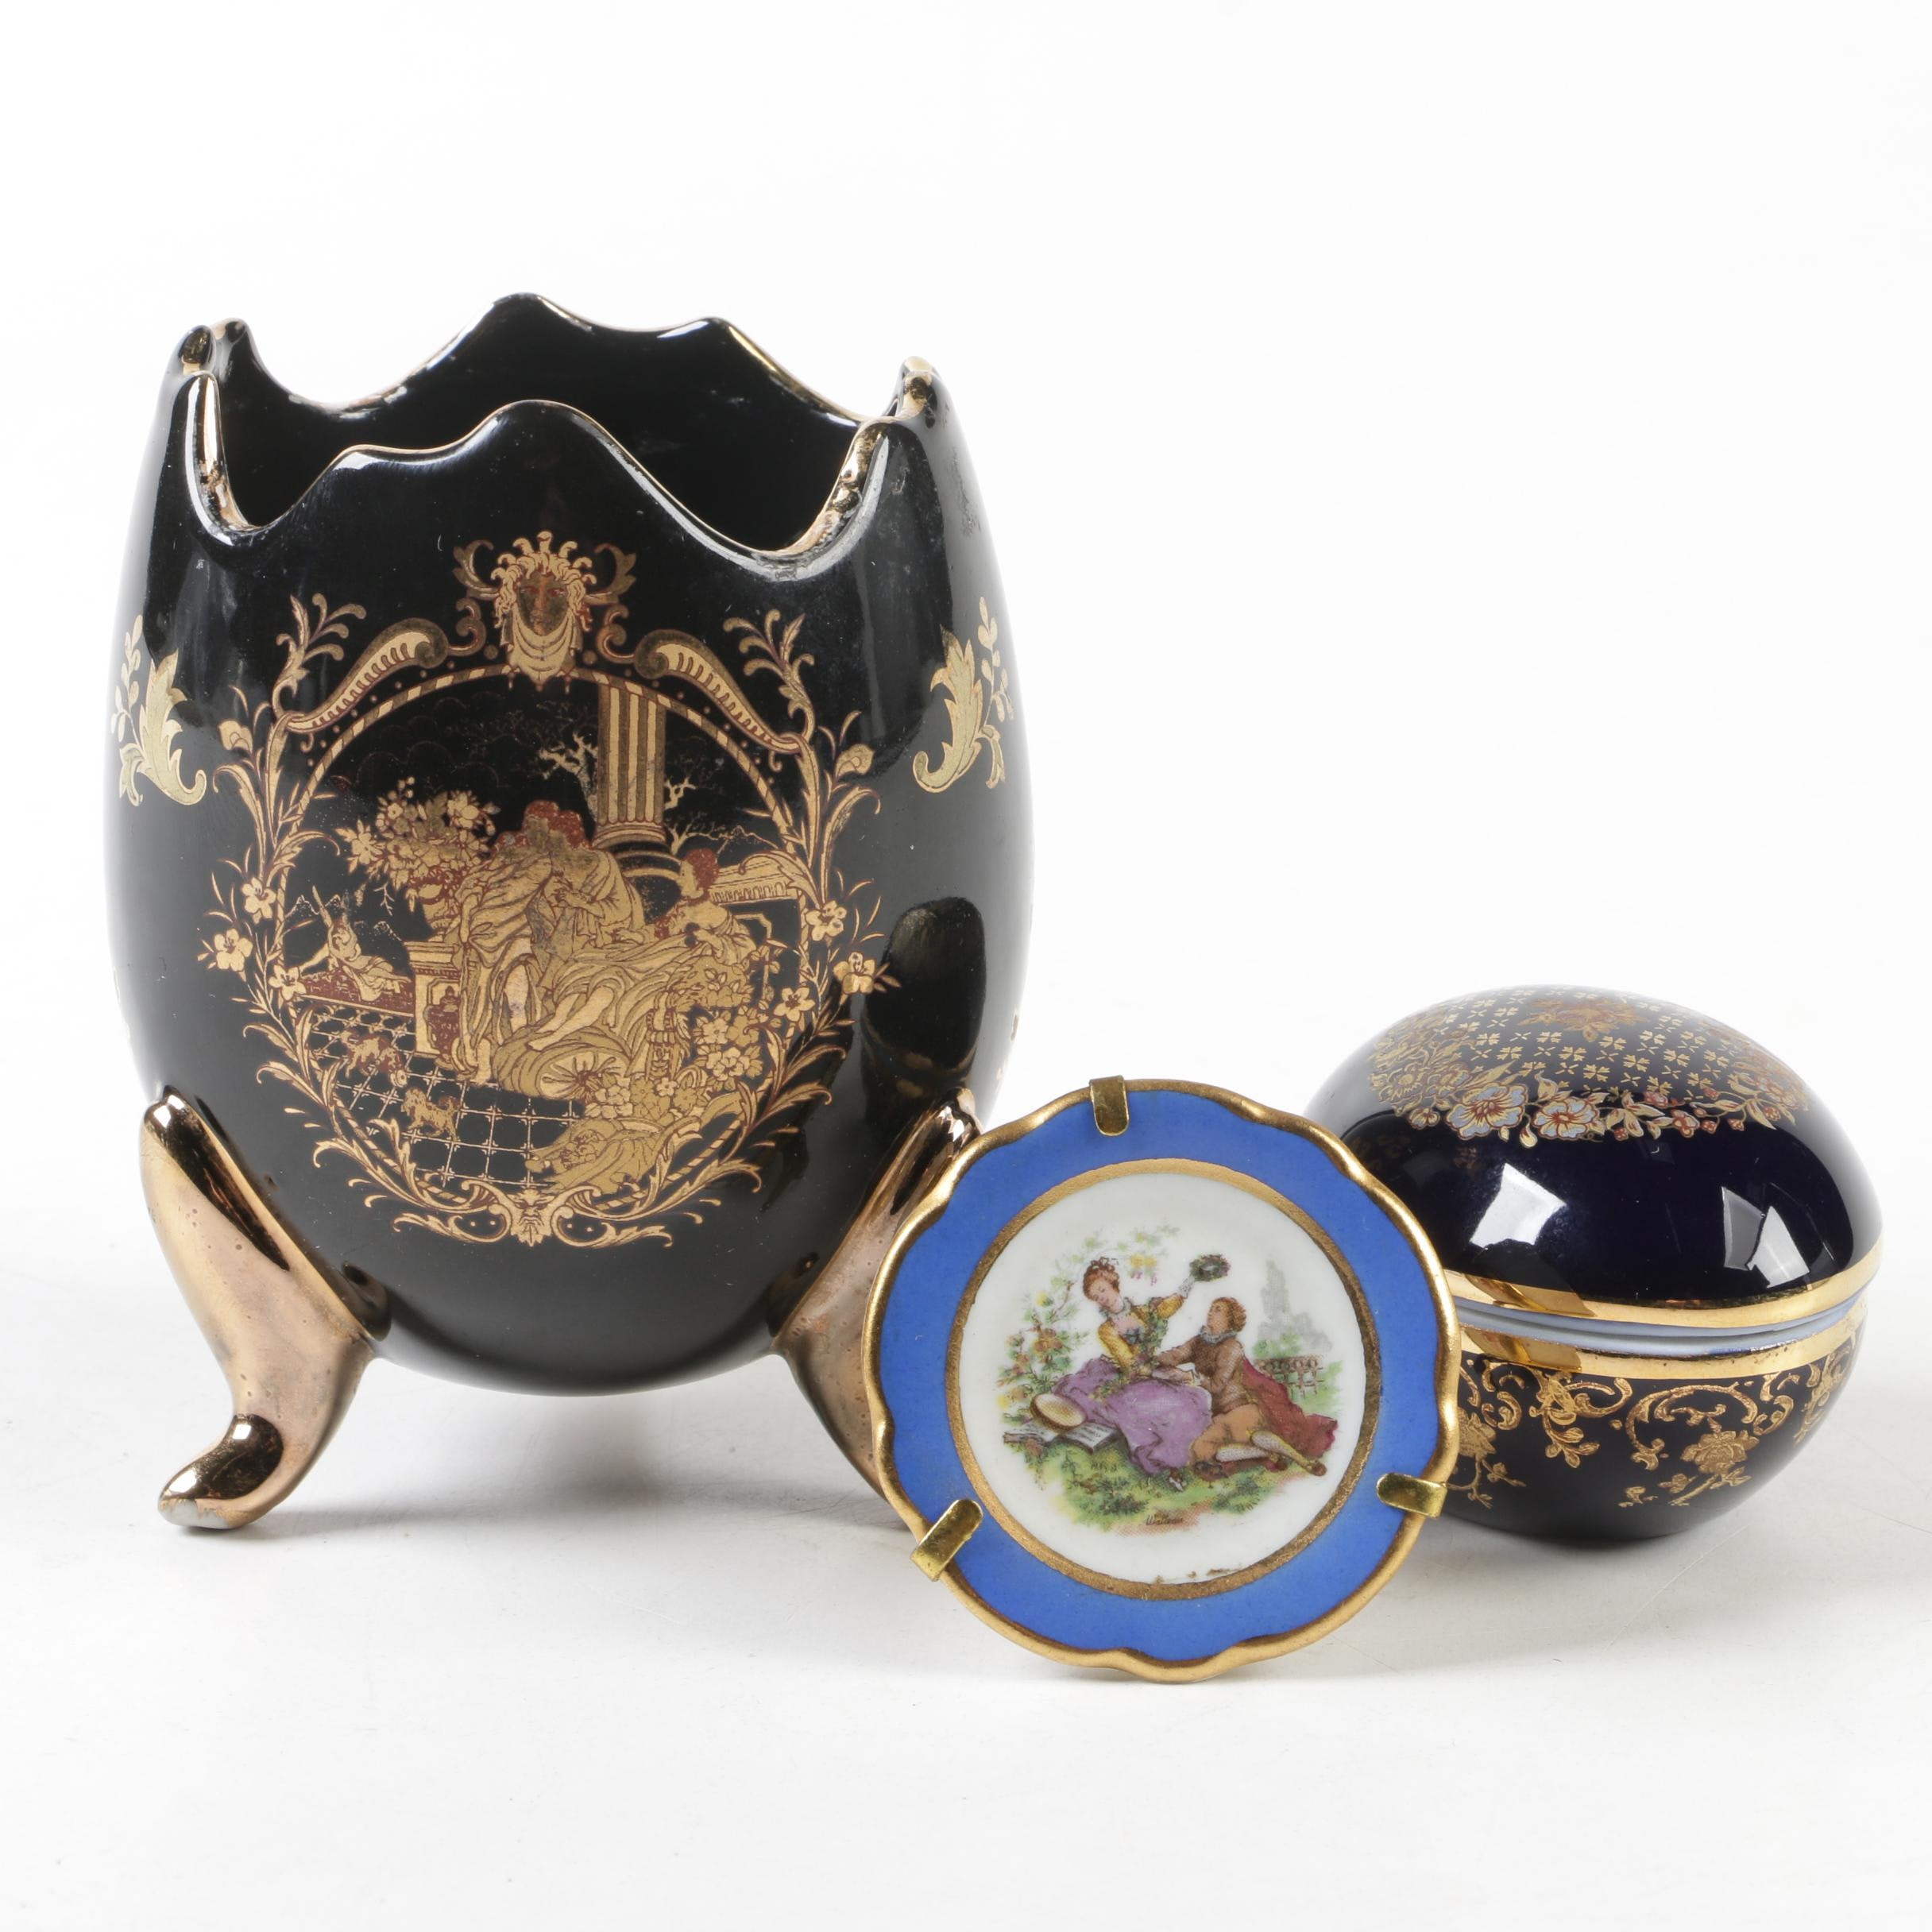 Limoges Porcelain Egg-Shaped Vase and Trinket Box with Miniature Plate